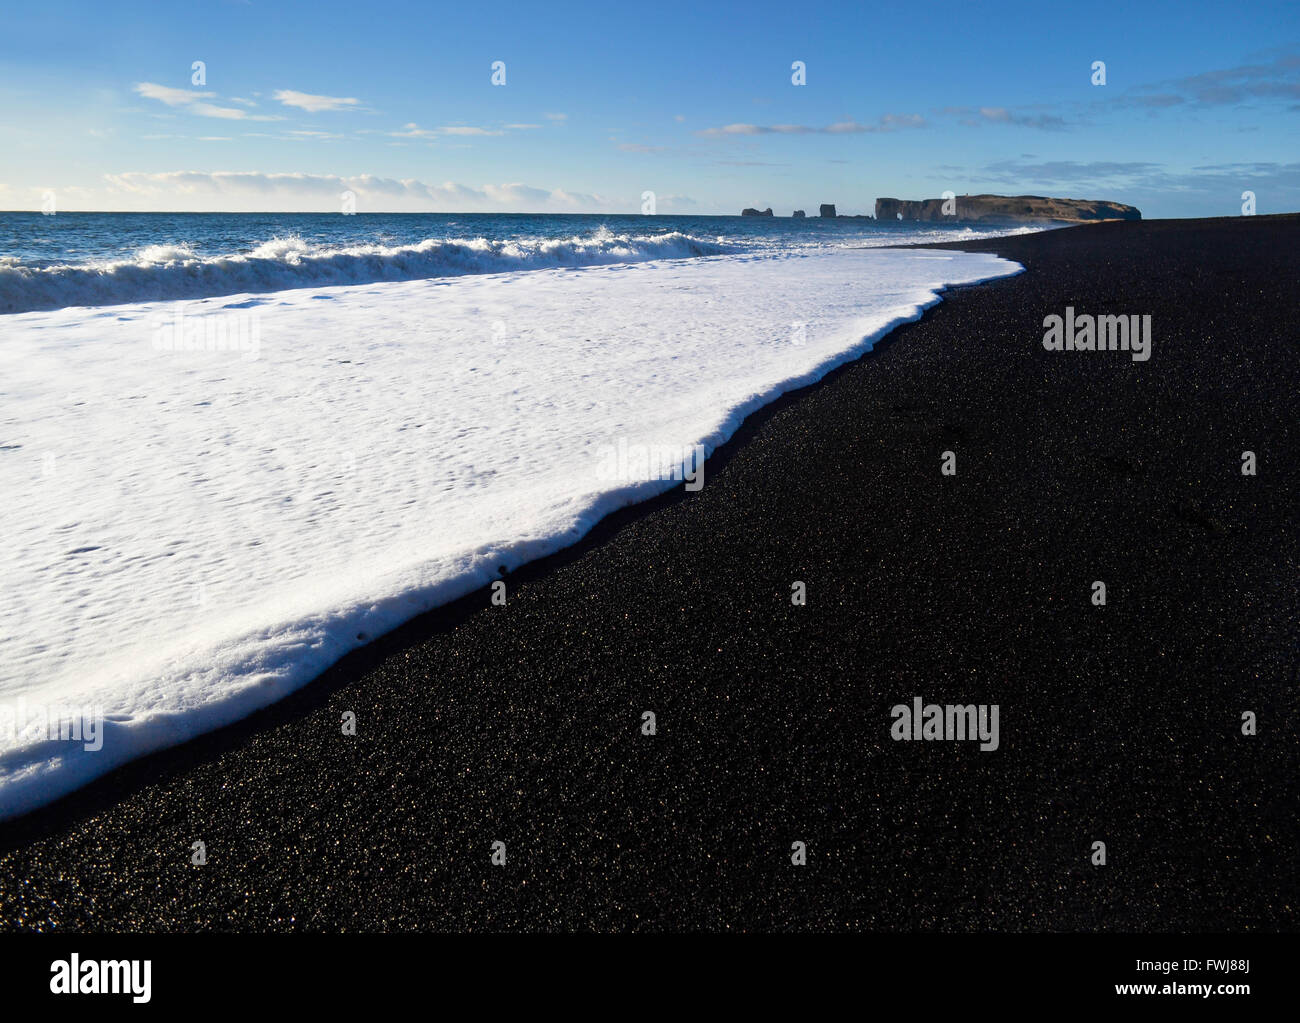 Wave Reaching Shore Against Sky - Stock Image